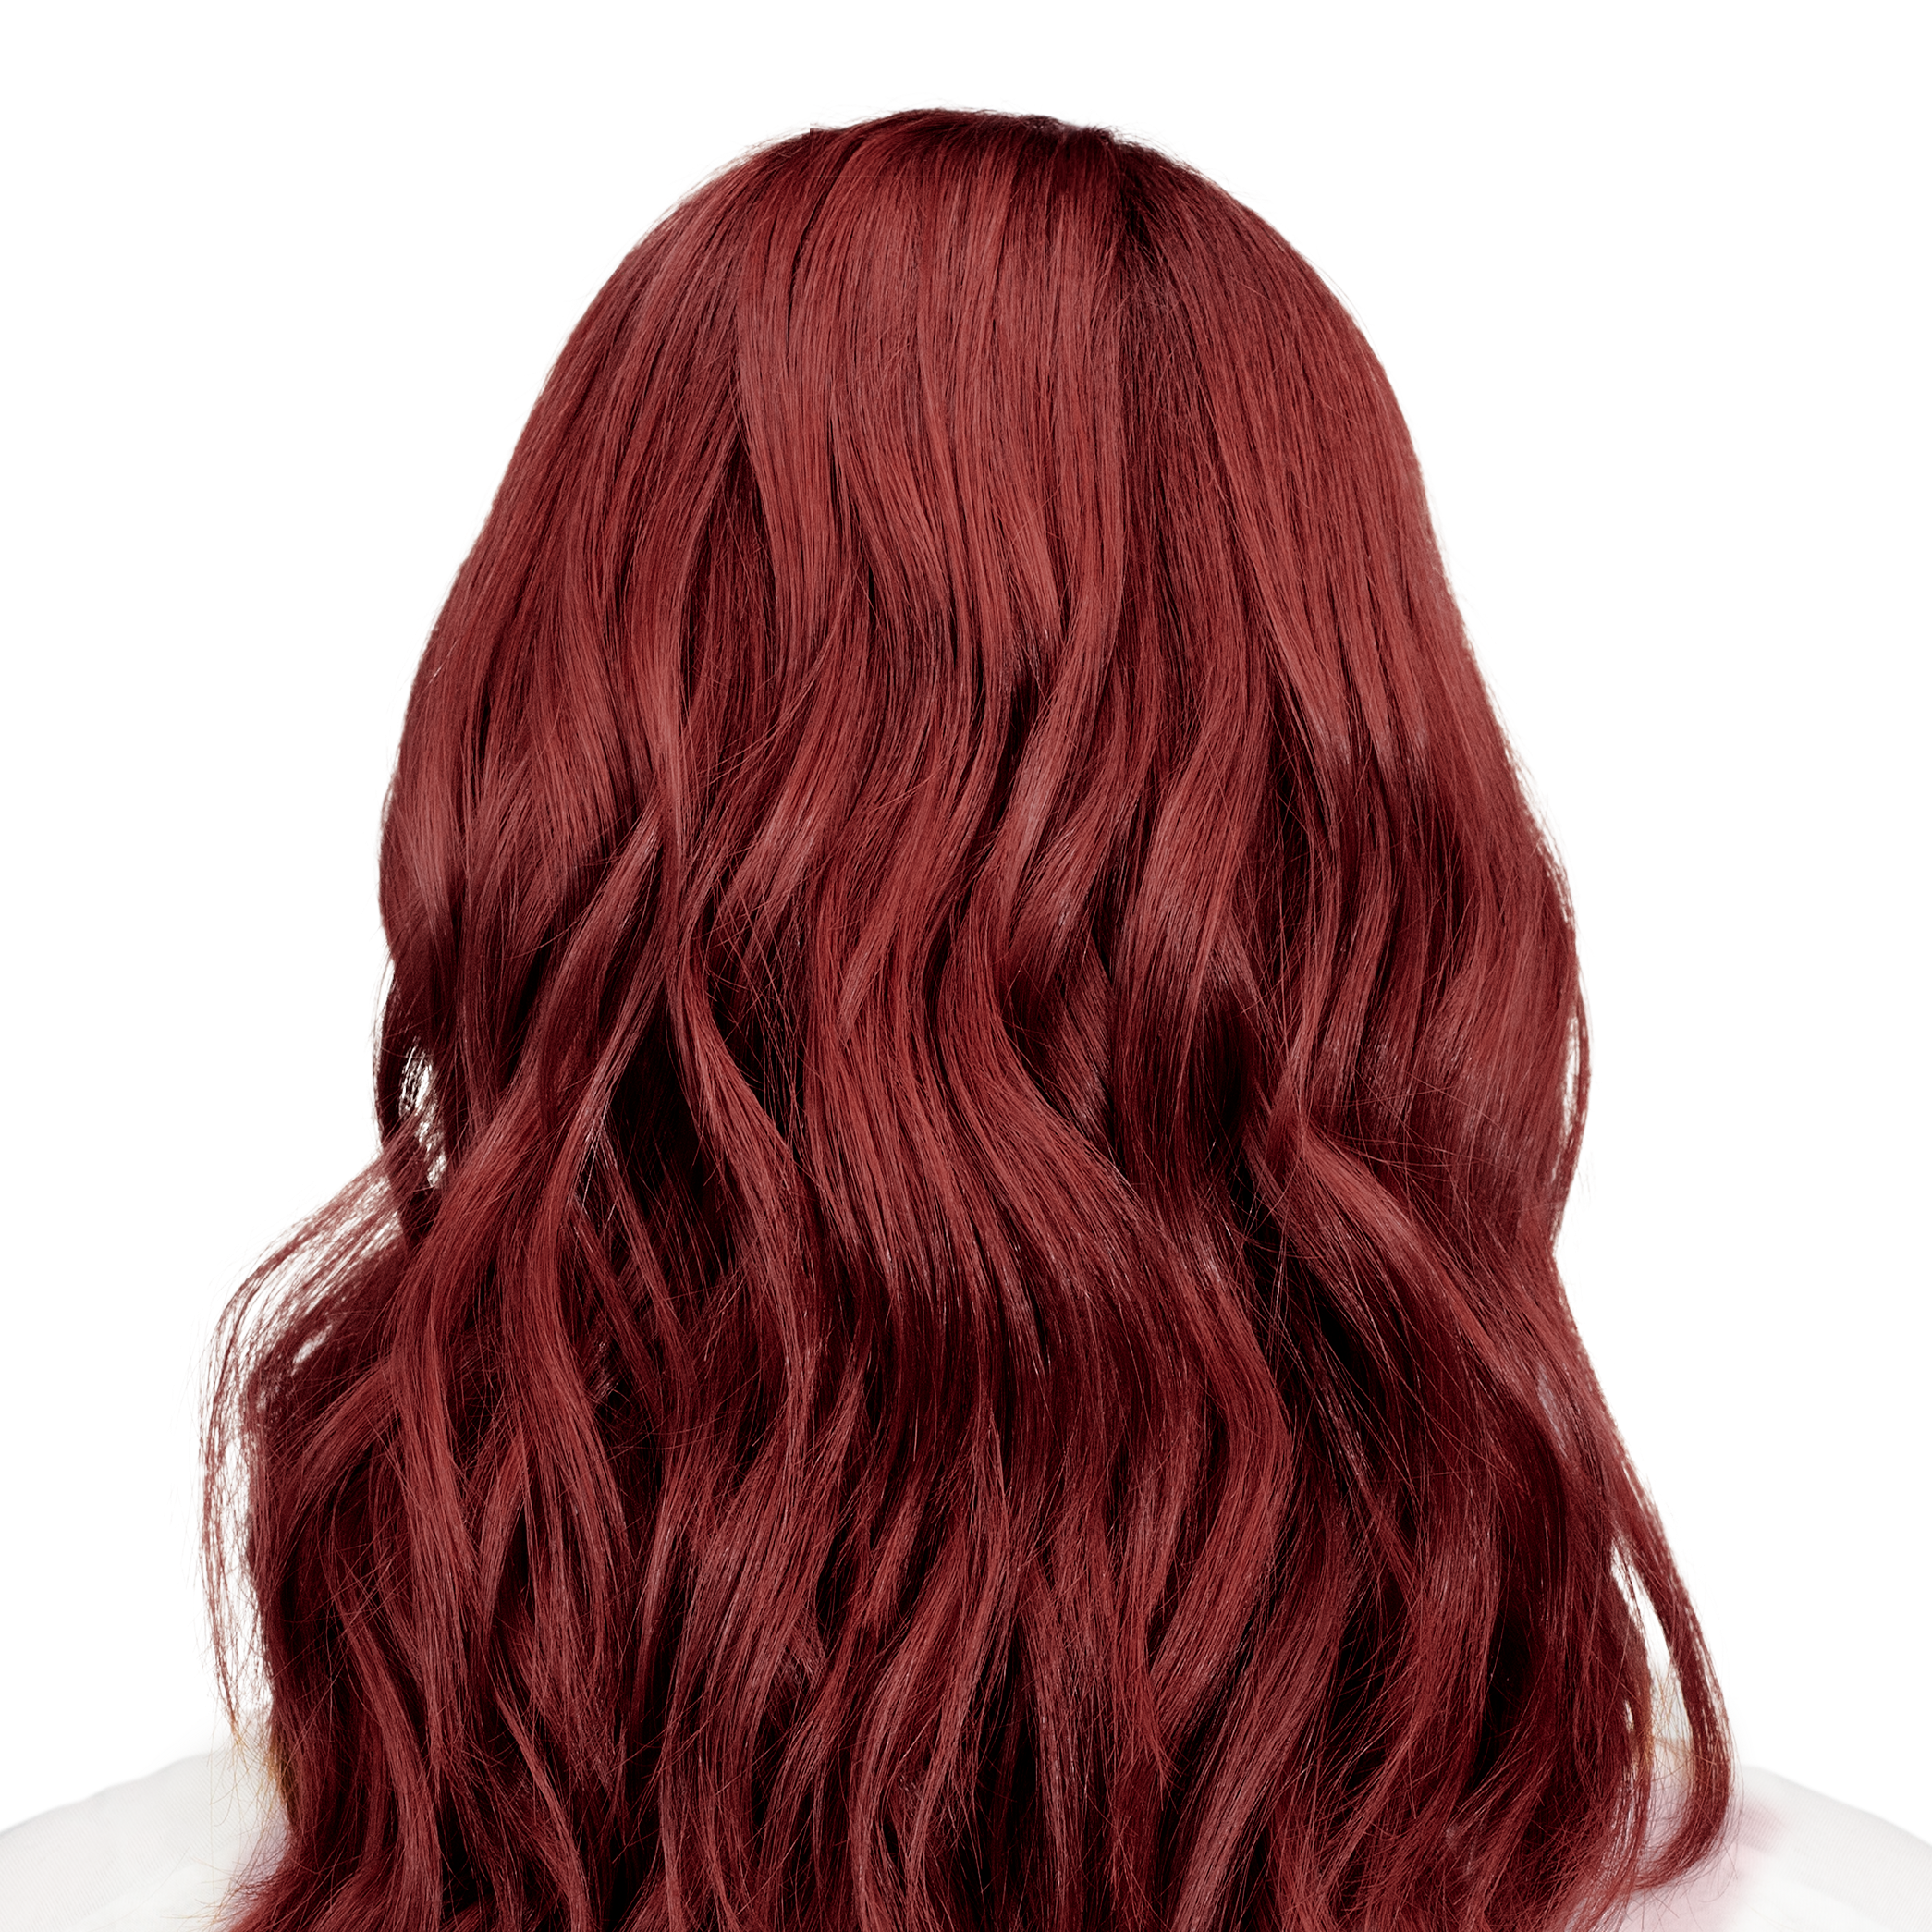 6rr hair color socolor savona scarlet 6rr 6rr rich auburn with red tones